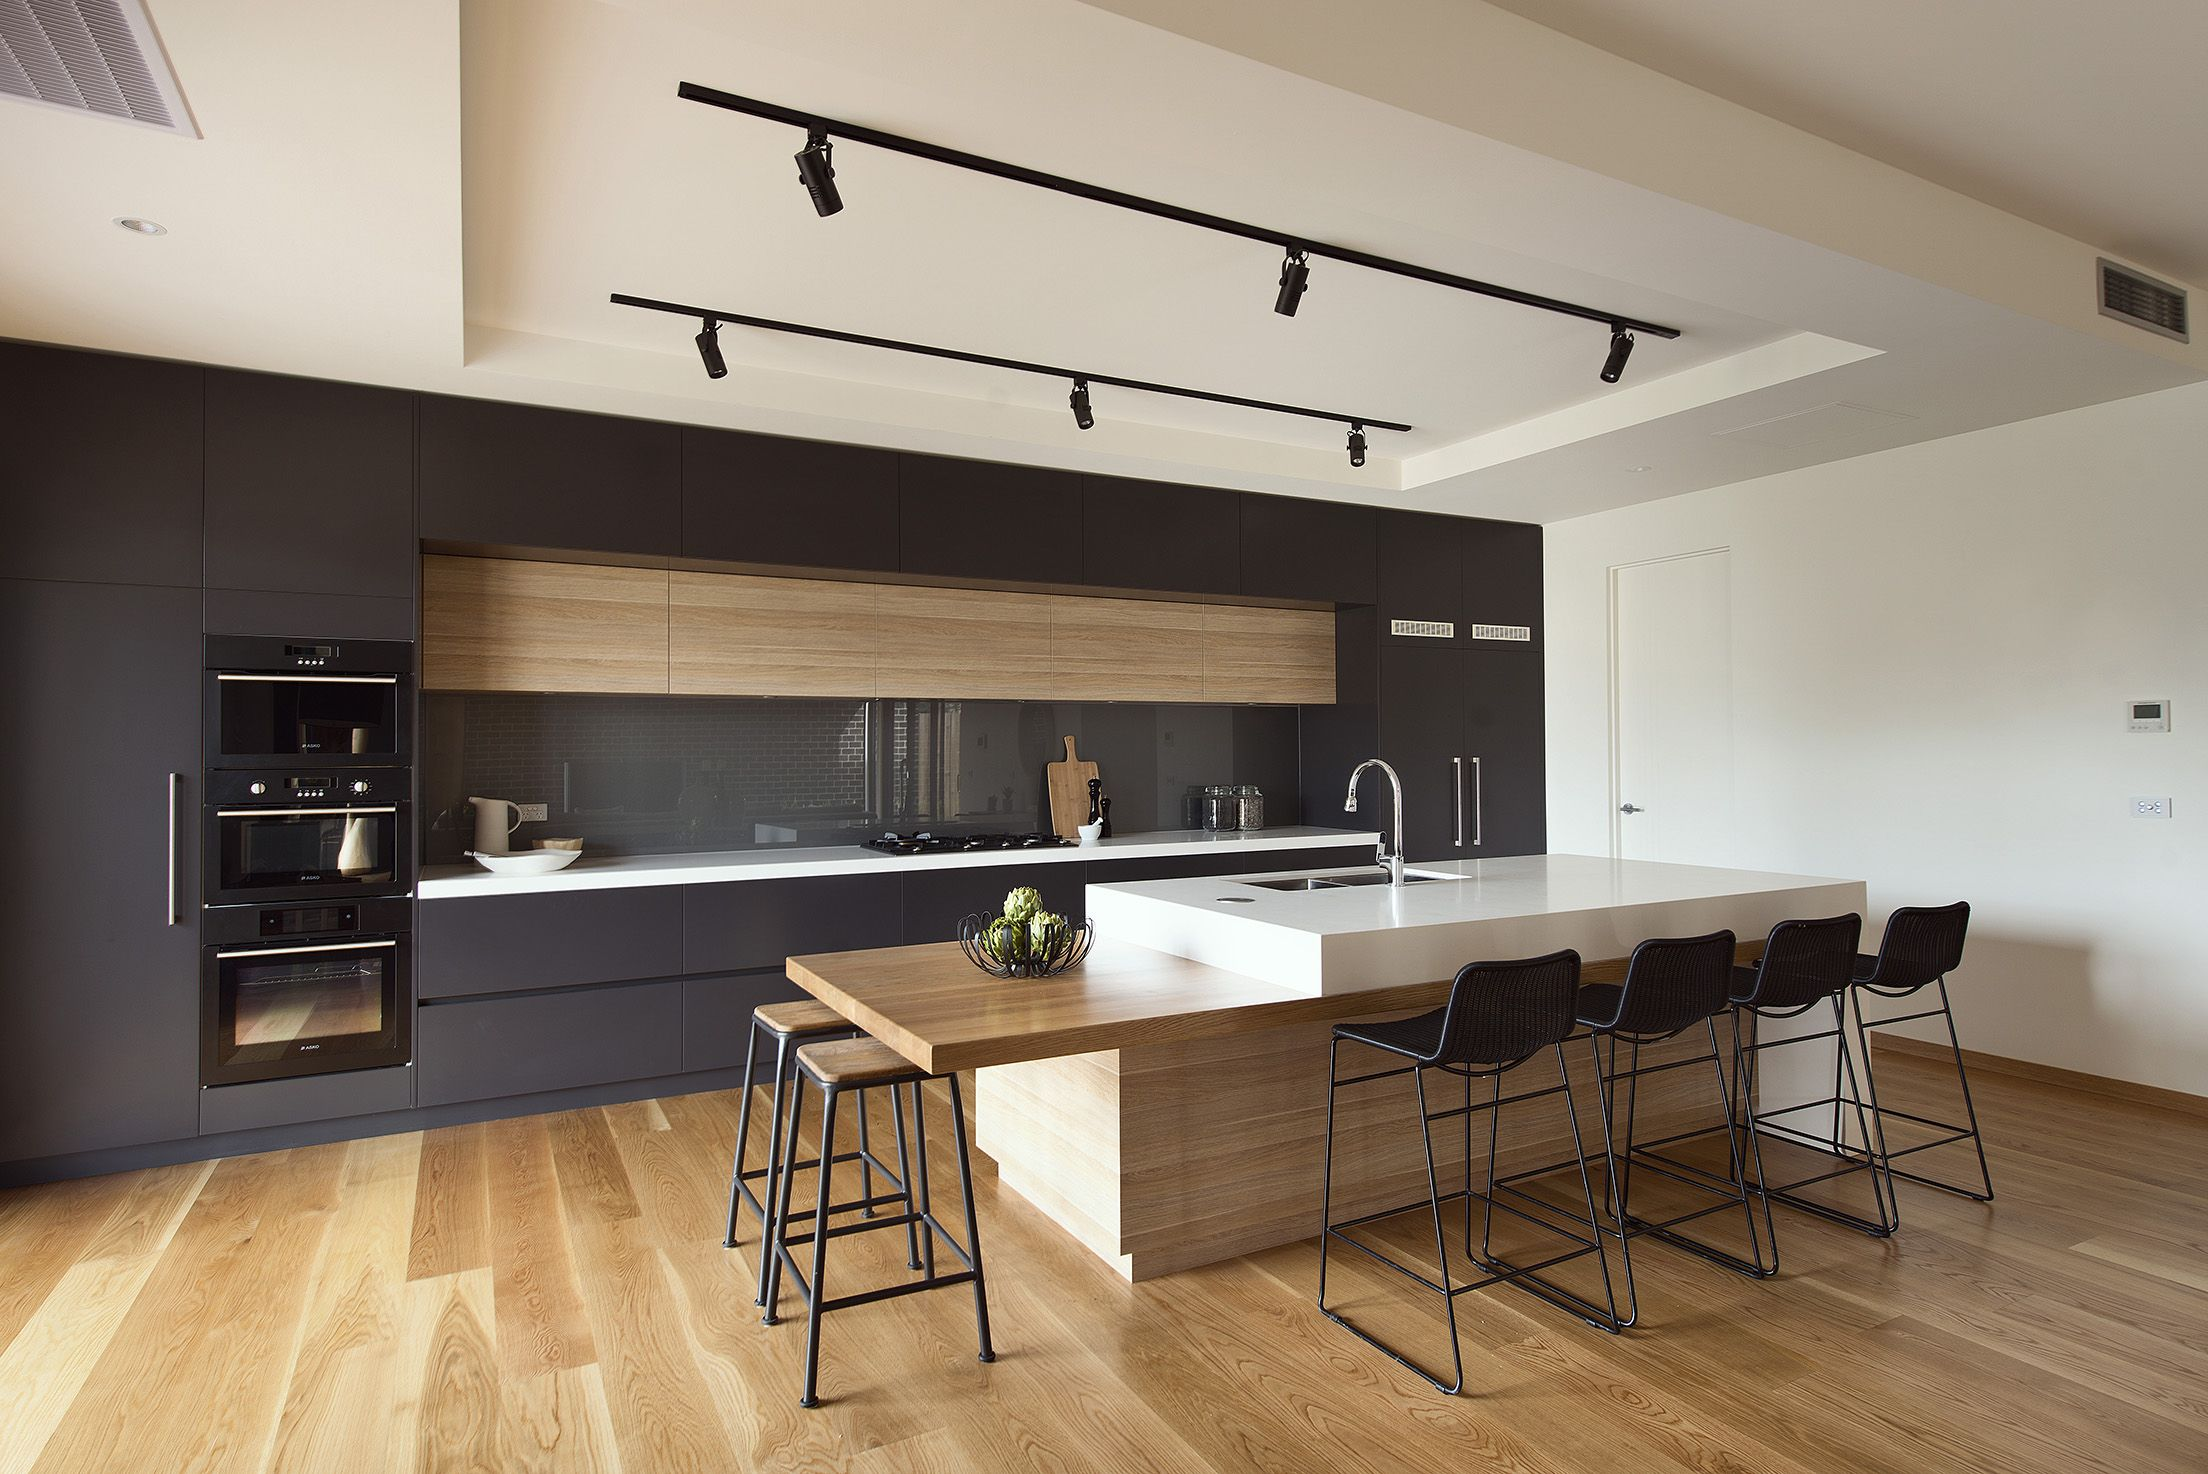 Natural Asian Kitchen Design Modern Idea Wooden Floor Island Dark Amusing Modern Kitchen Design Ideas 2014 Decorating Inspiration